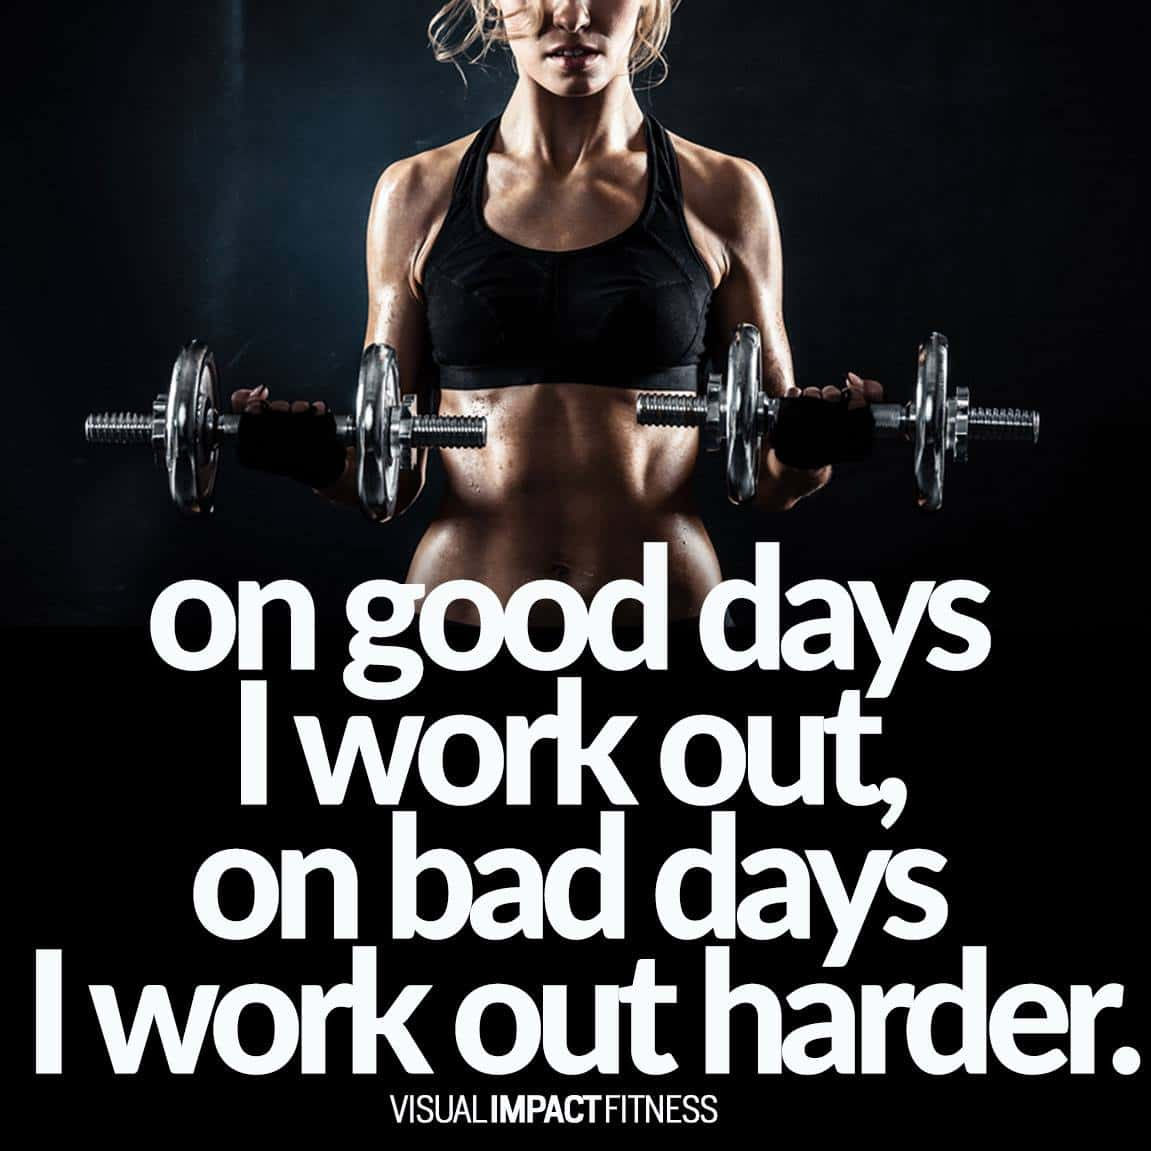 On good days I work out, on bad days I work out harder